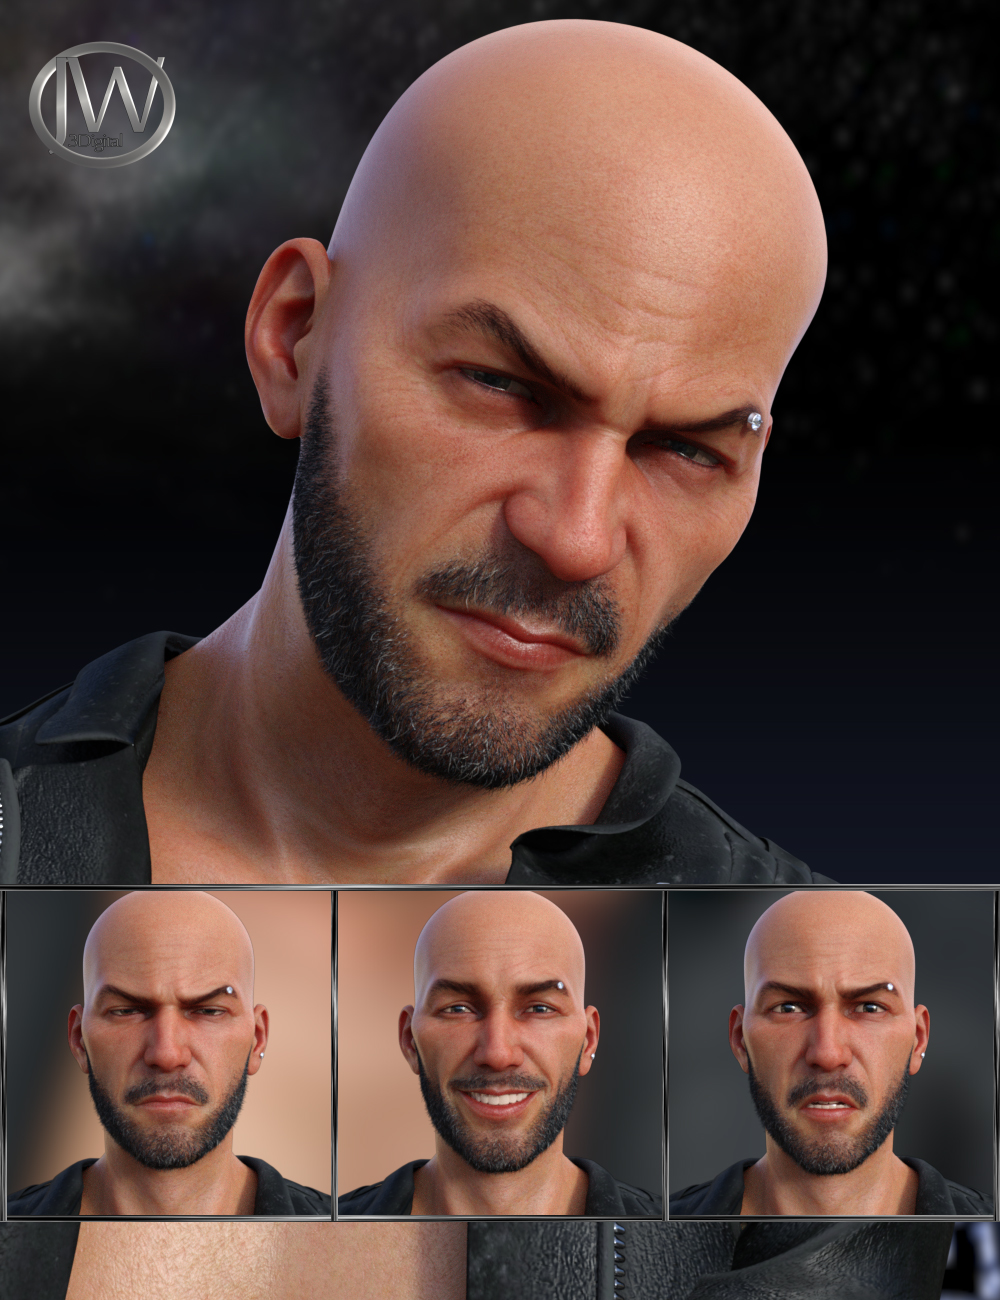 My Rules - Expressions for Genesis 8 Male and Christian 8 by: JWolf, 3D Models by Daz 3D